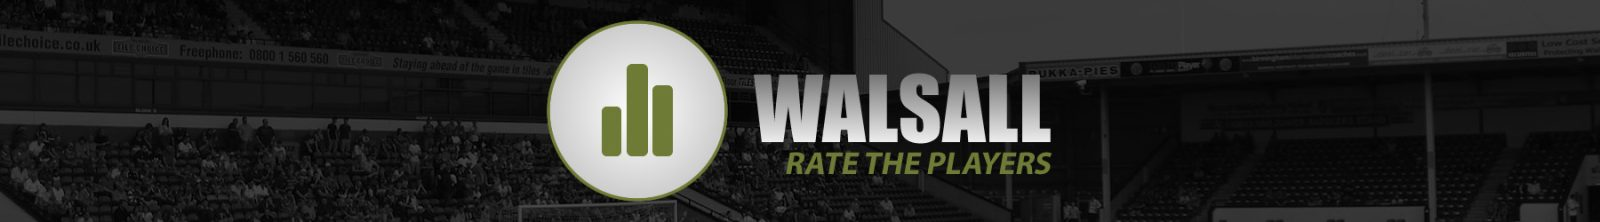 Rate Walsall